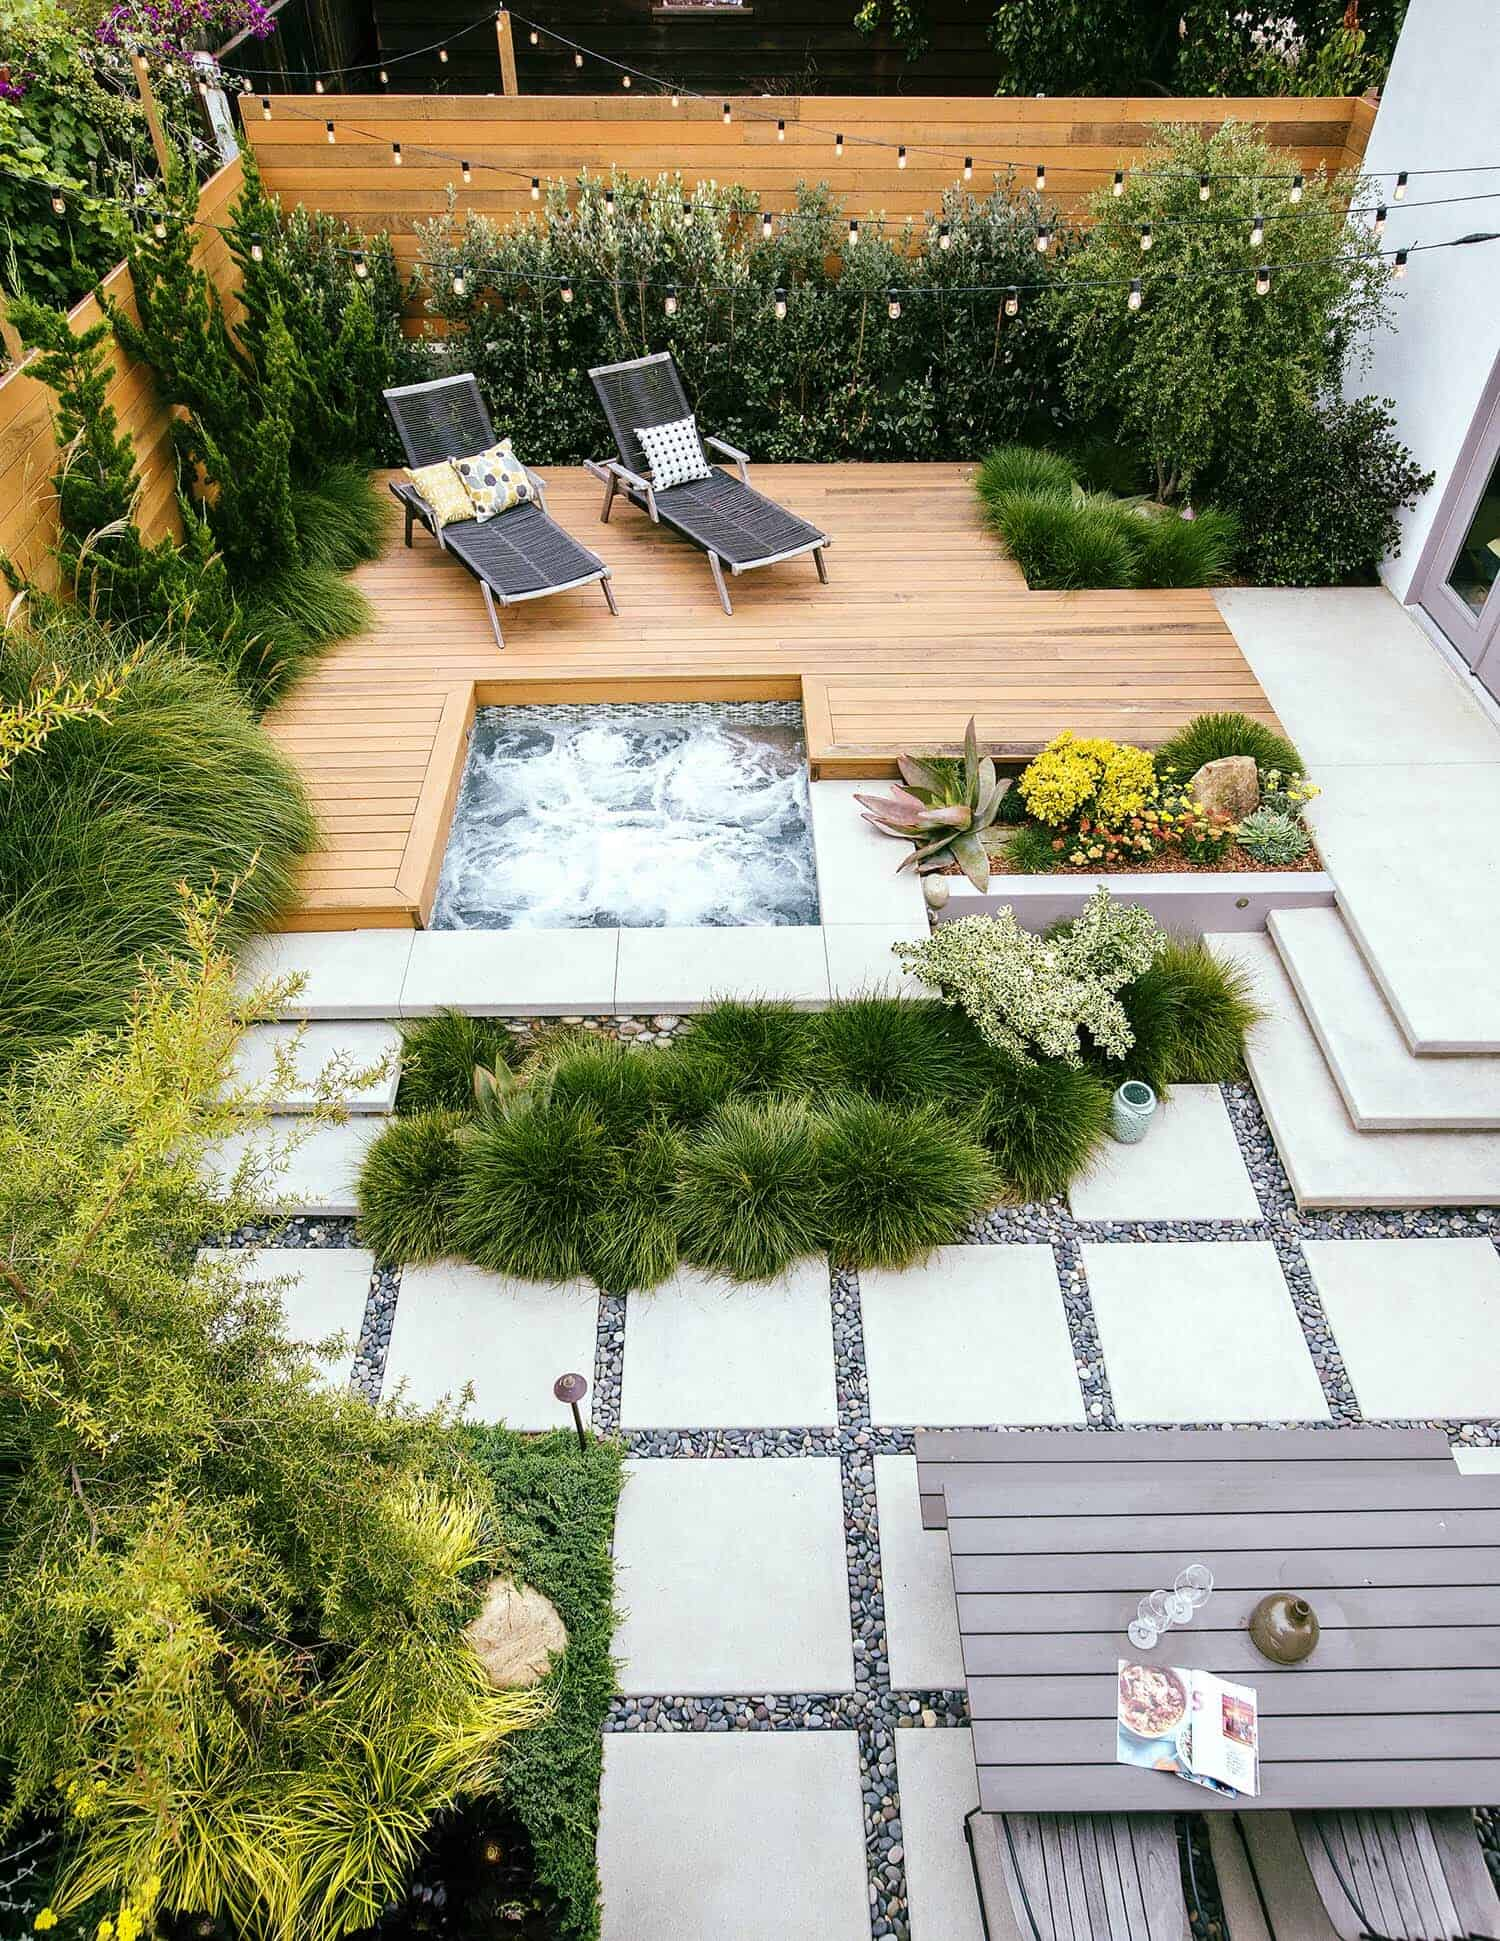 35 Brilliant and inspiring patio ideas for outdoor living ... on master suite ideas for home, summer for home, library ideas for home, halloween ideas for home, storage ideas for home, carpet ideas for home, fire pit for home, birthday ideas for home, plants ideas for home, spas for home, craft ideas for home, landscaping for home, fall ideas for home, backyard thanksgiving, room ideas for home, retaining walls for home, den ideas for home, office ideas for home, backyard inspirations, gardening for home,